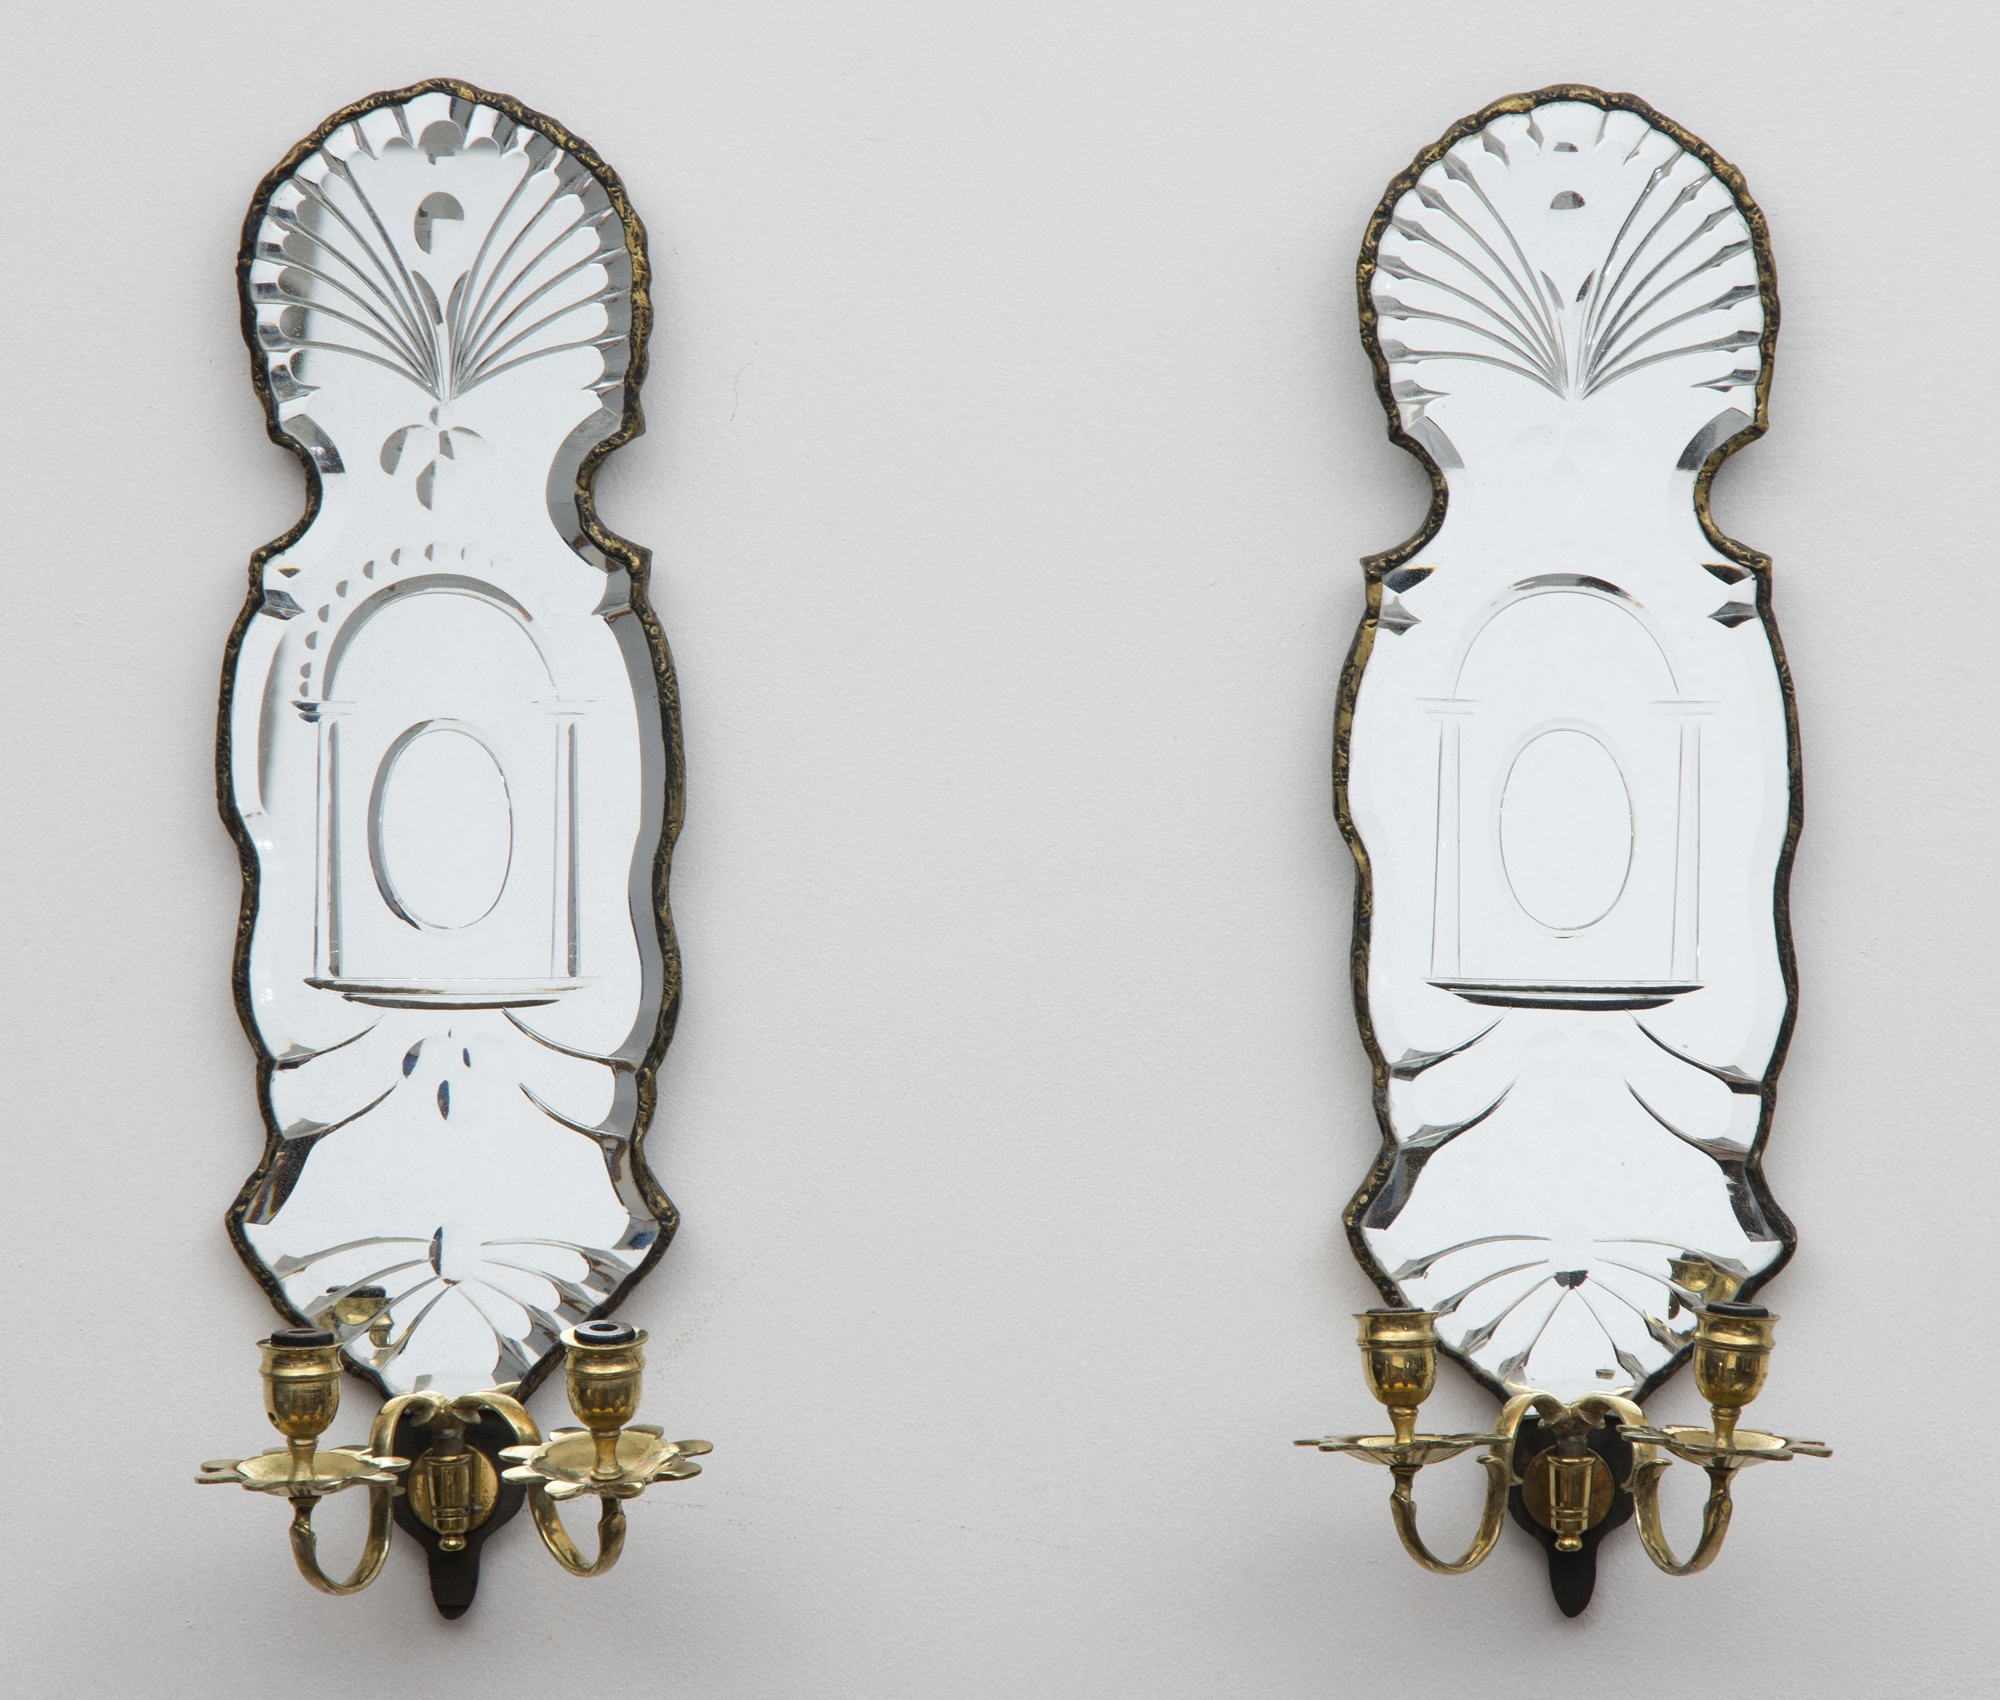 Permalink to Mirrored Wall Sconces & Votives